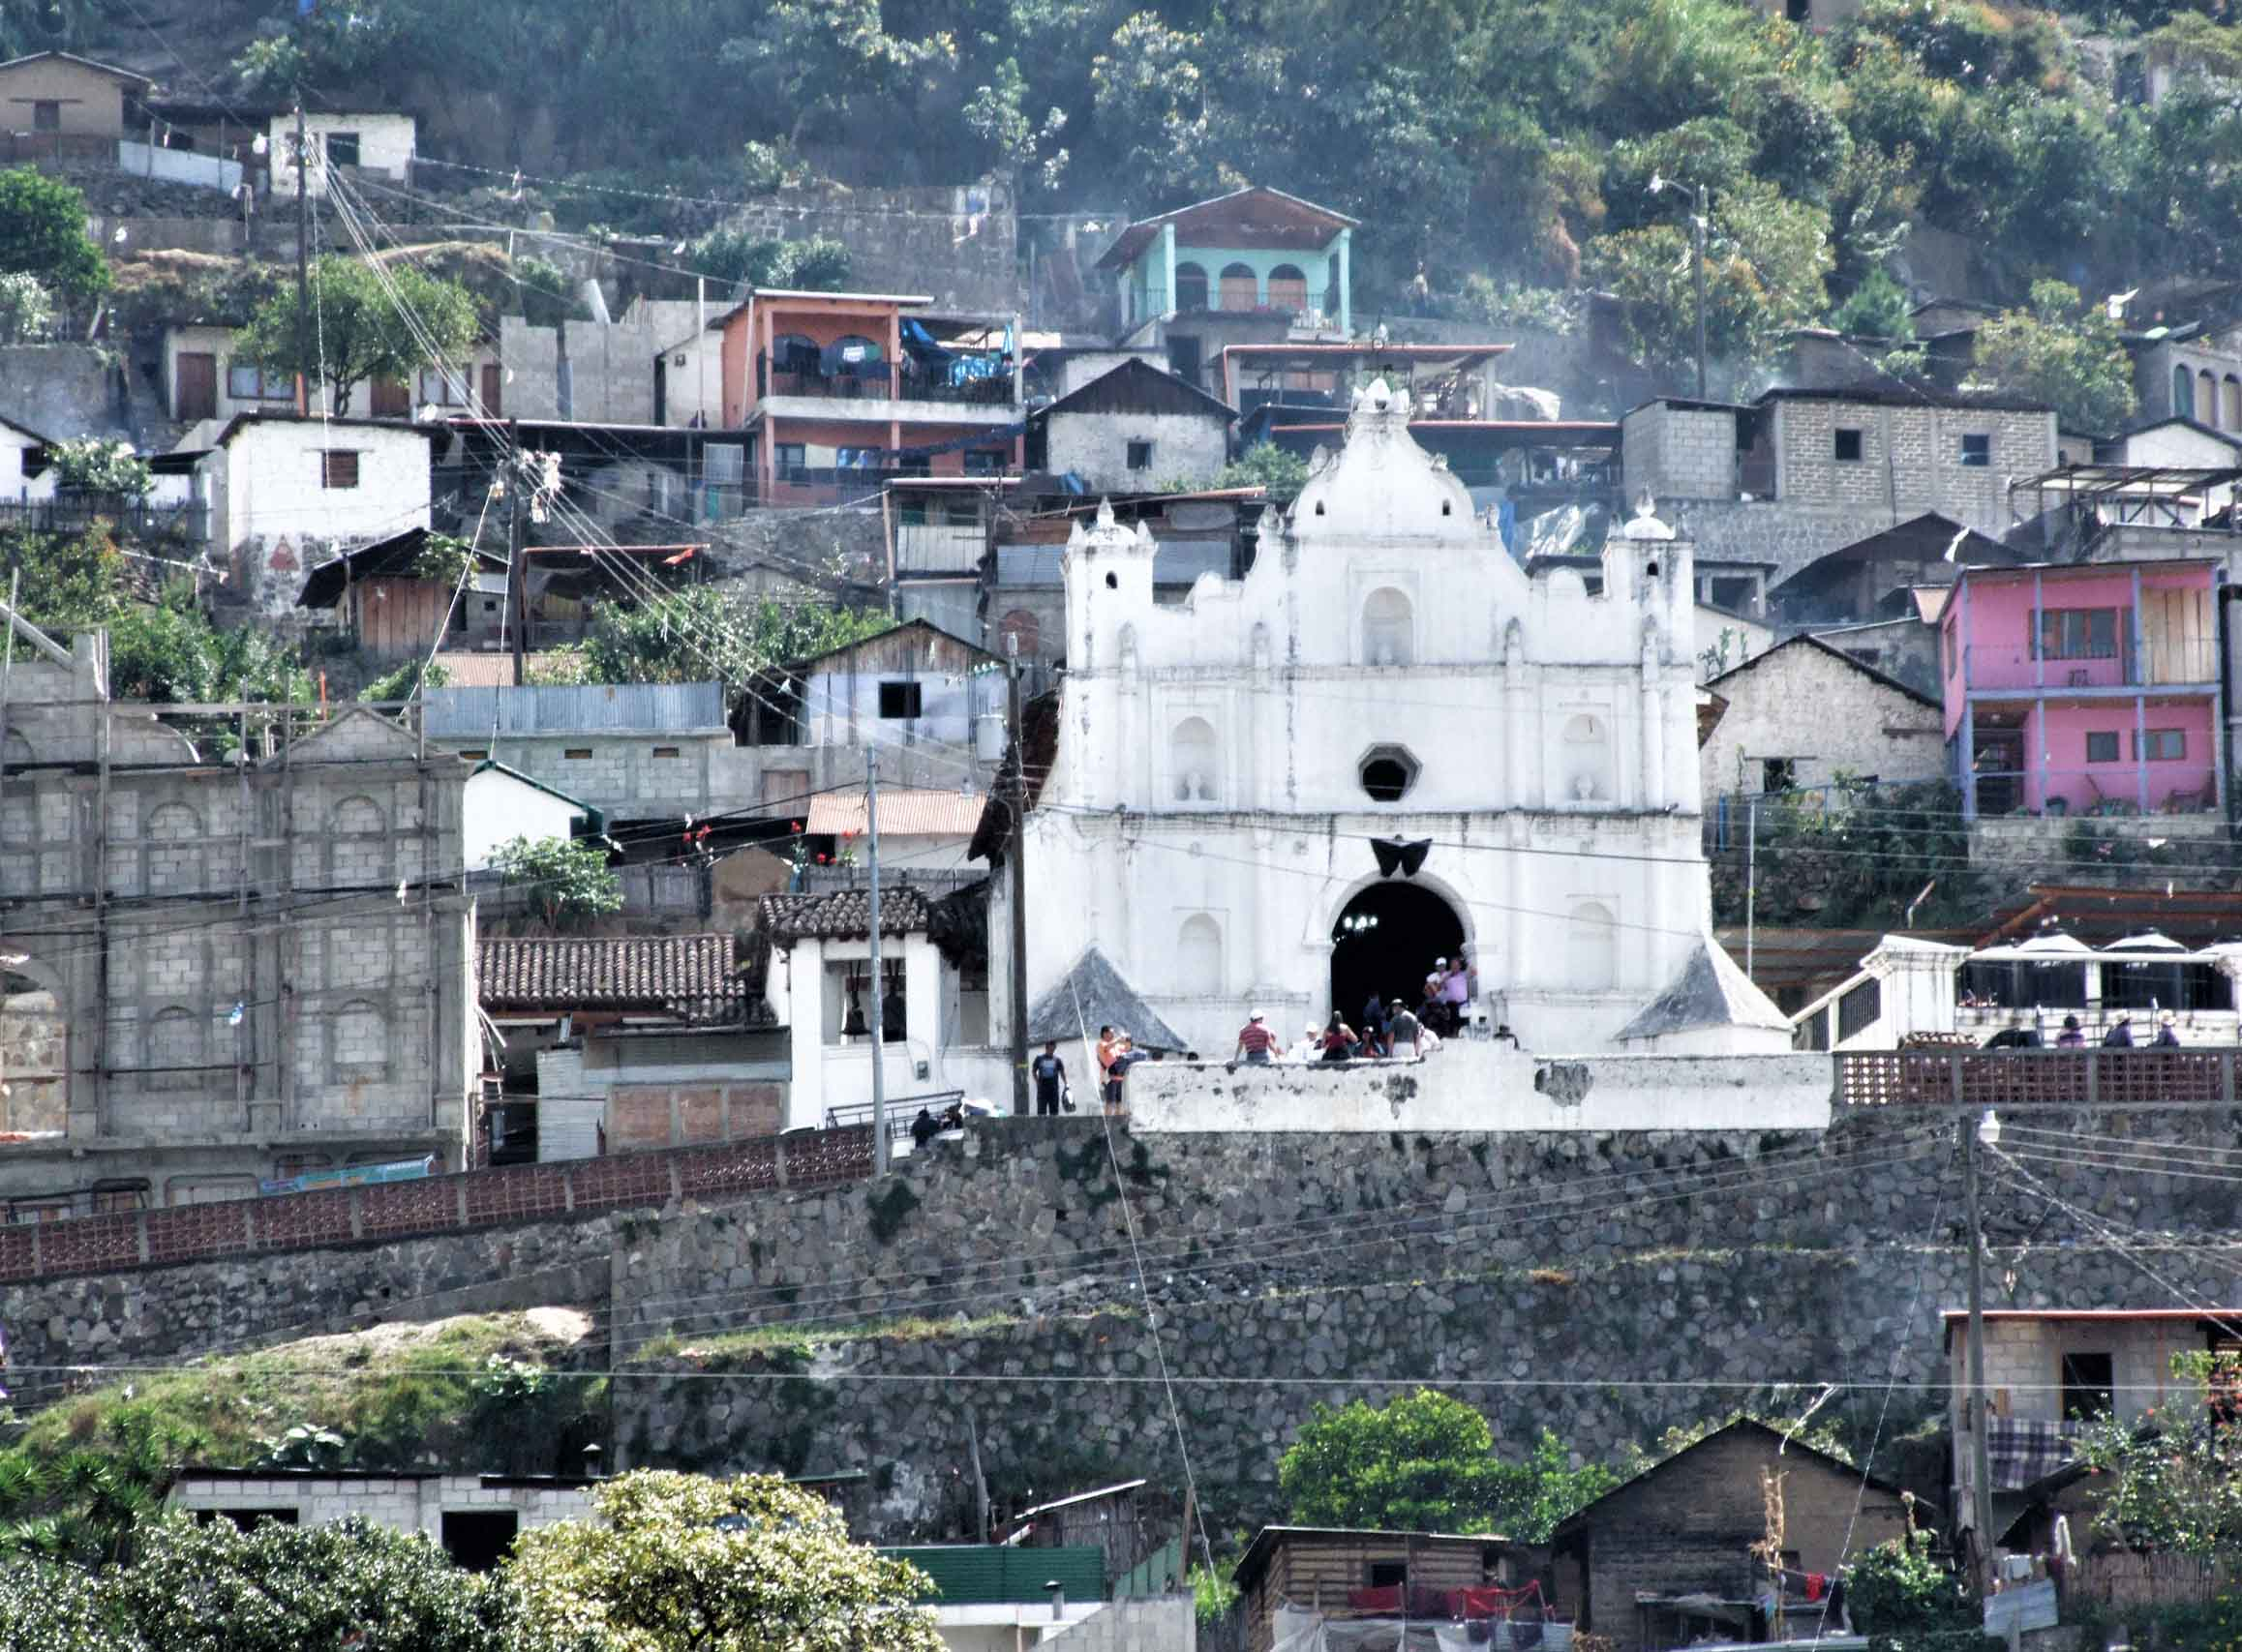 White church on a hillside surrounded by simple houses